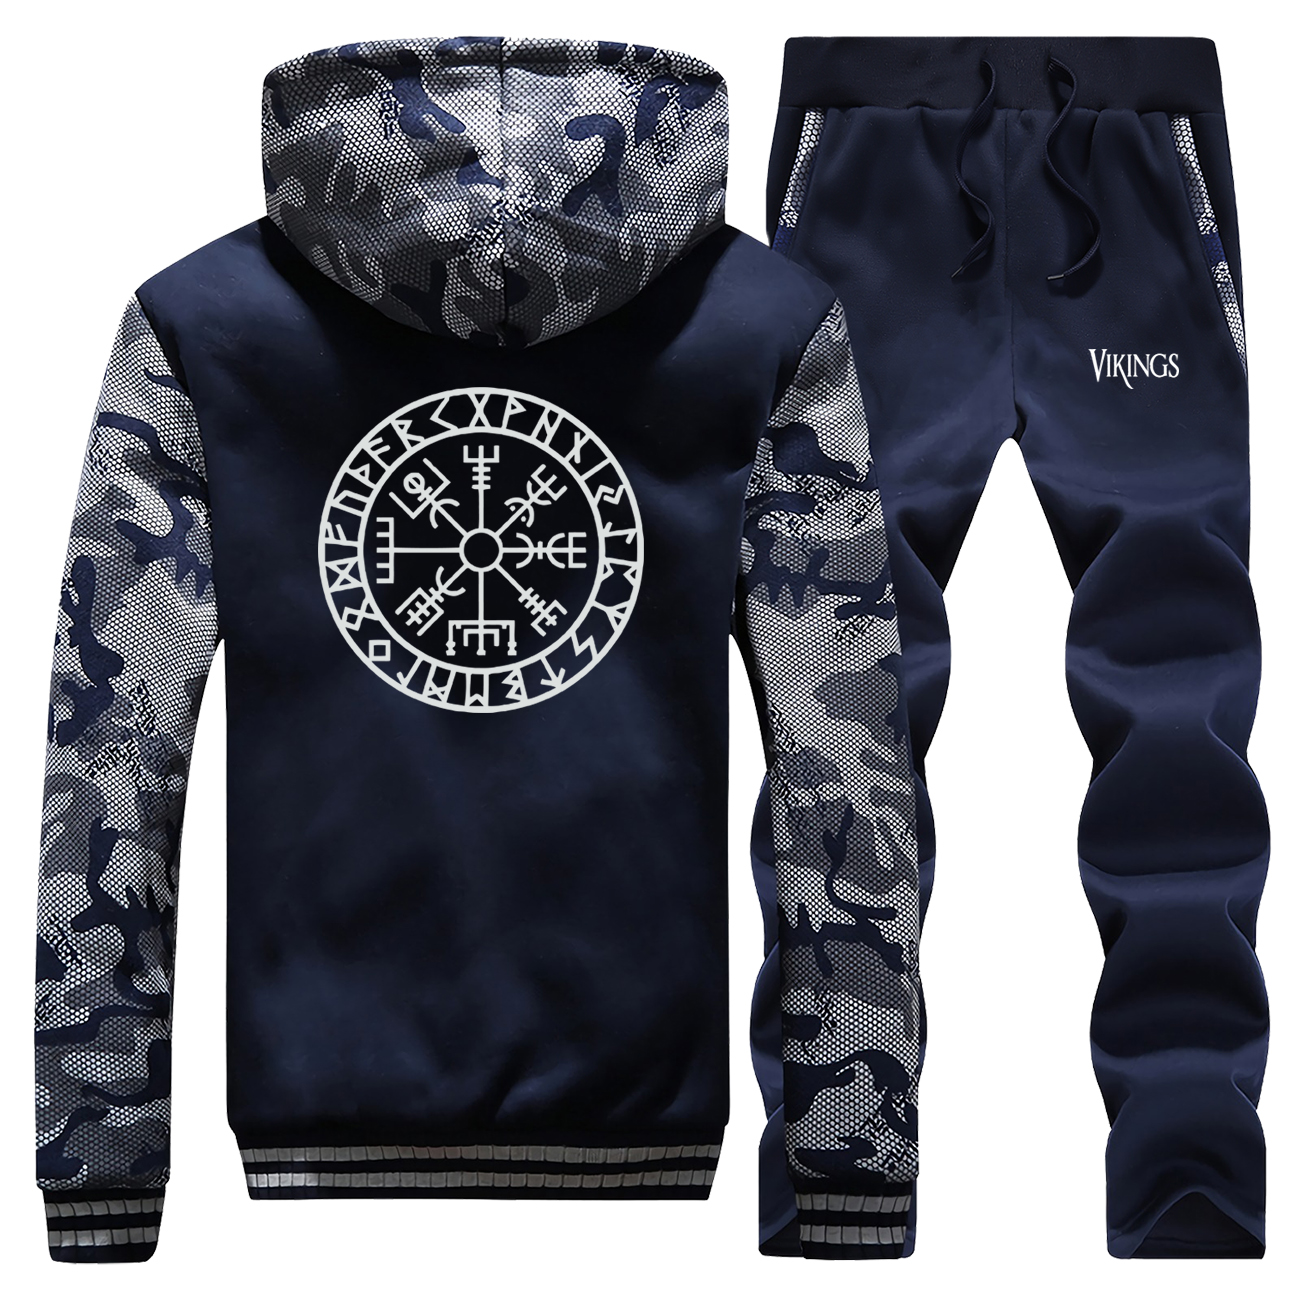 Winter Men's Set VIKINGS Warm Coat Pant Thick Warm Tracksuit Hooded Suits Male Sweatsuit For Man Tracksuit Clothing